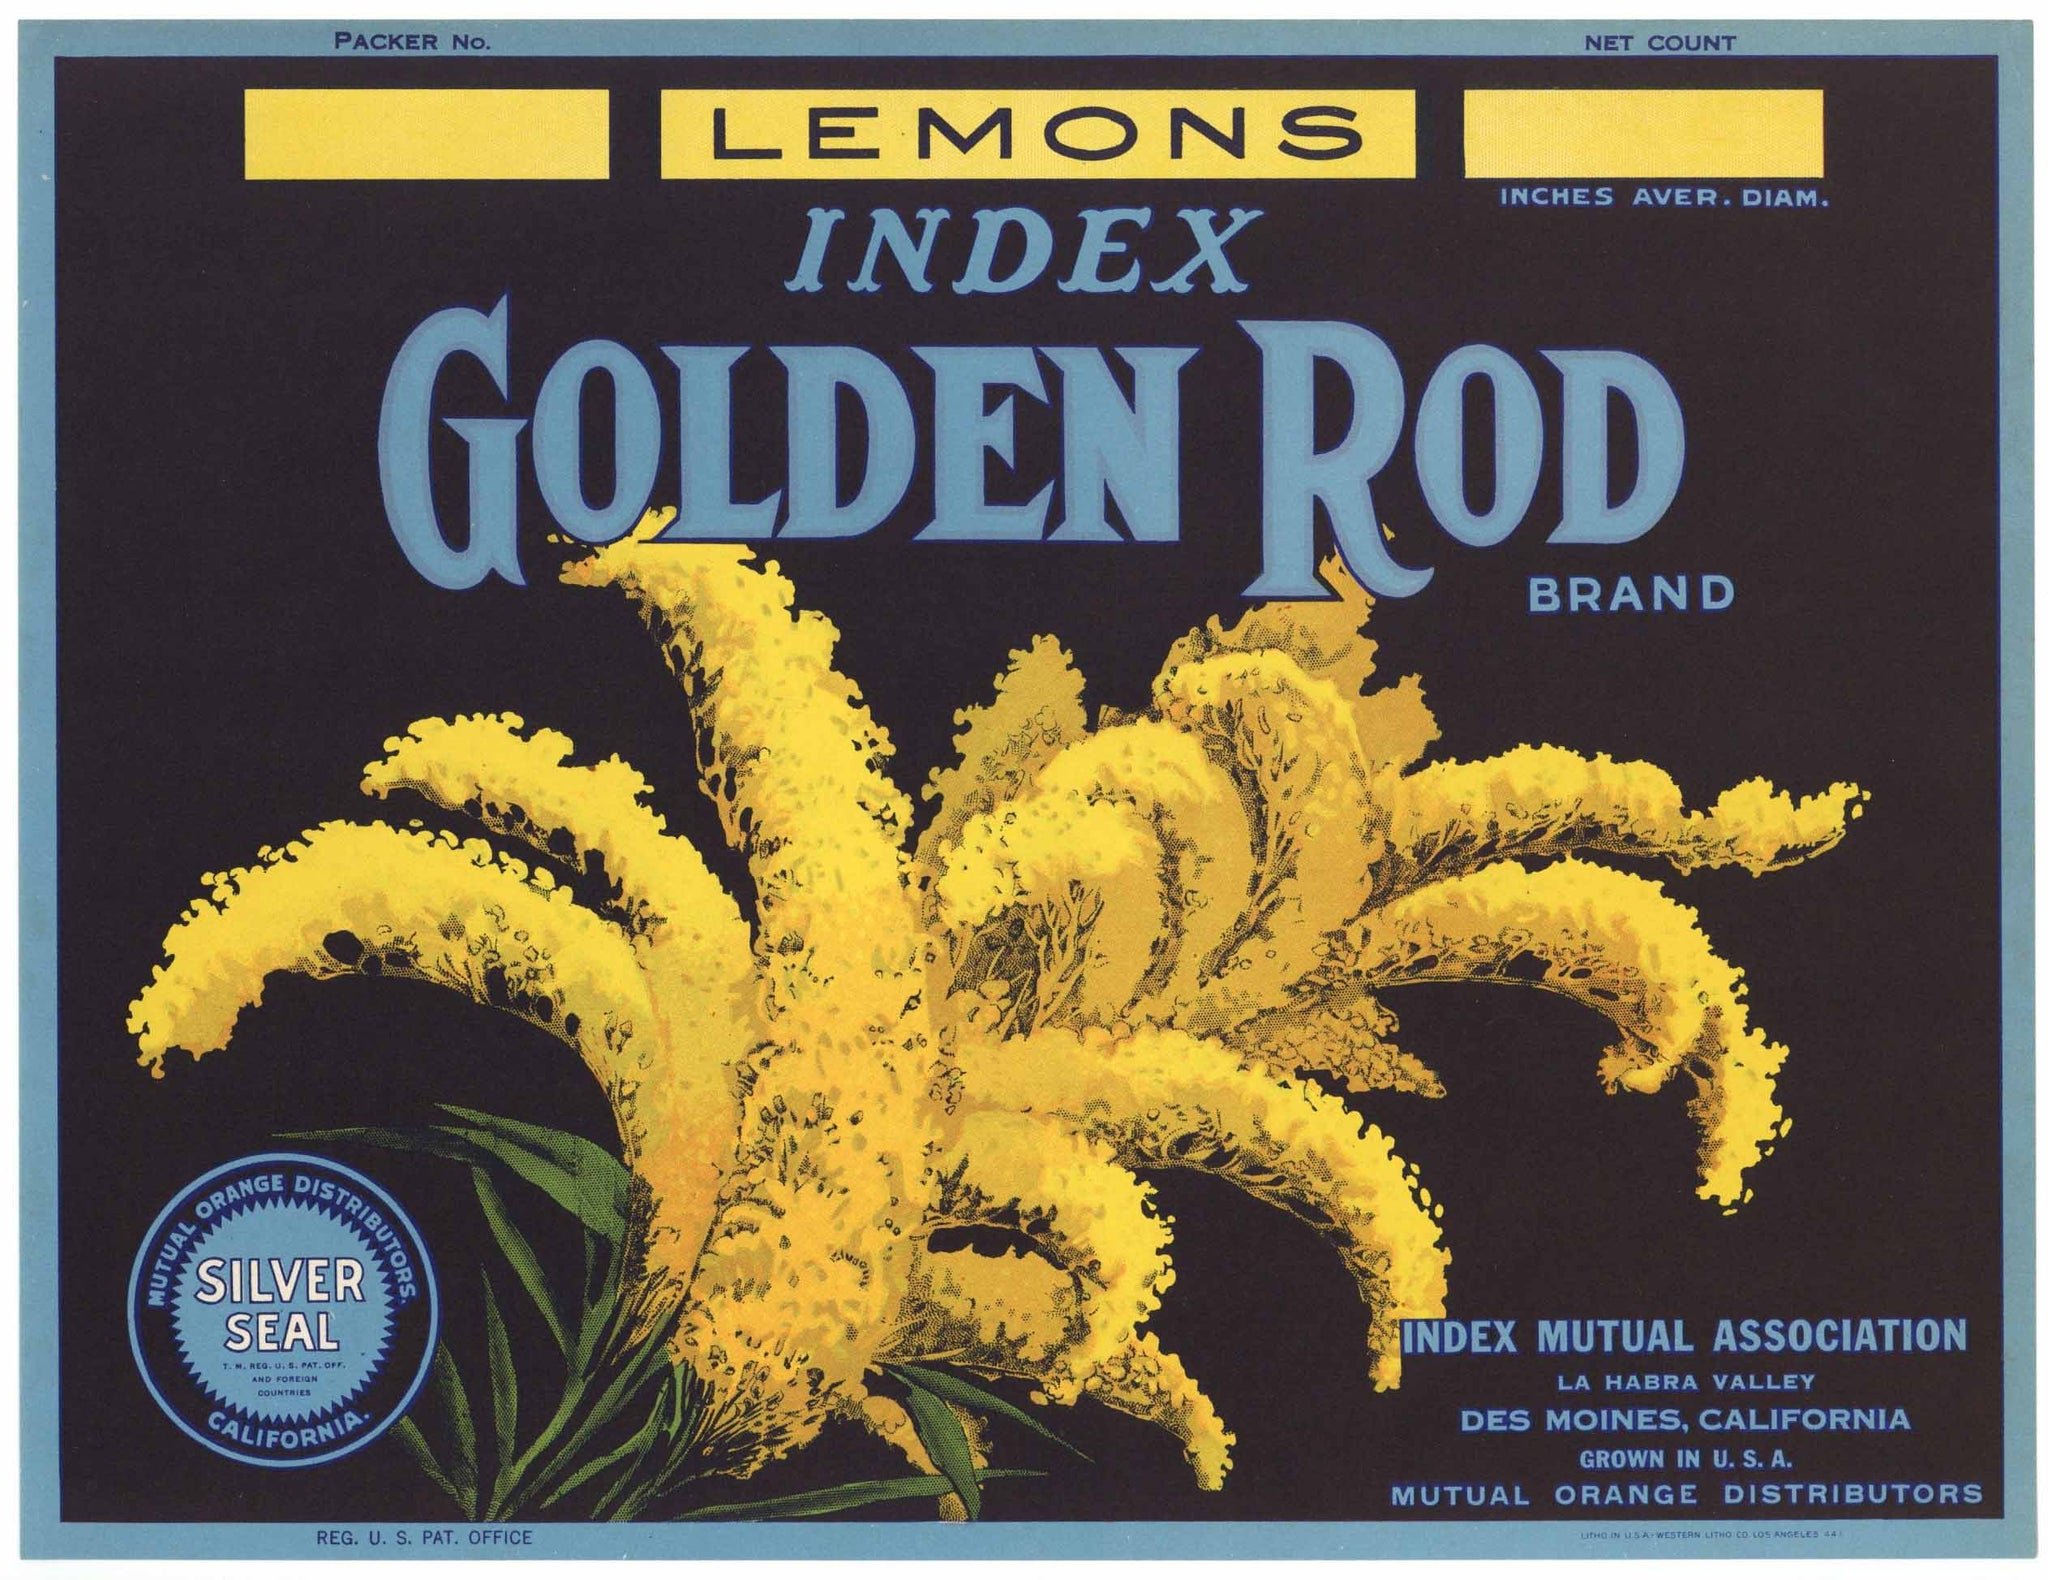 Golden Rod Brand Vintage La Habra Valley Lemon Crate Label